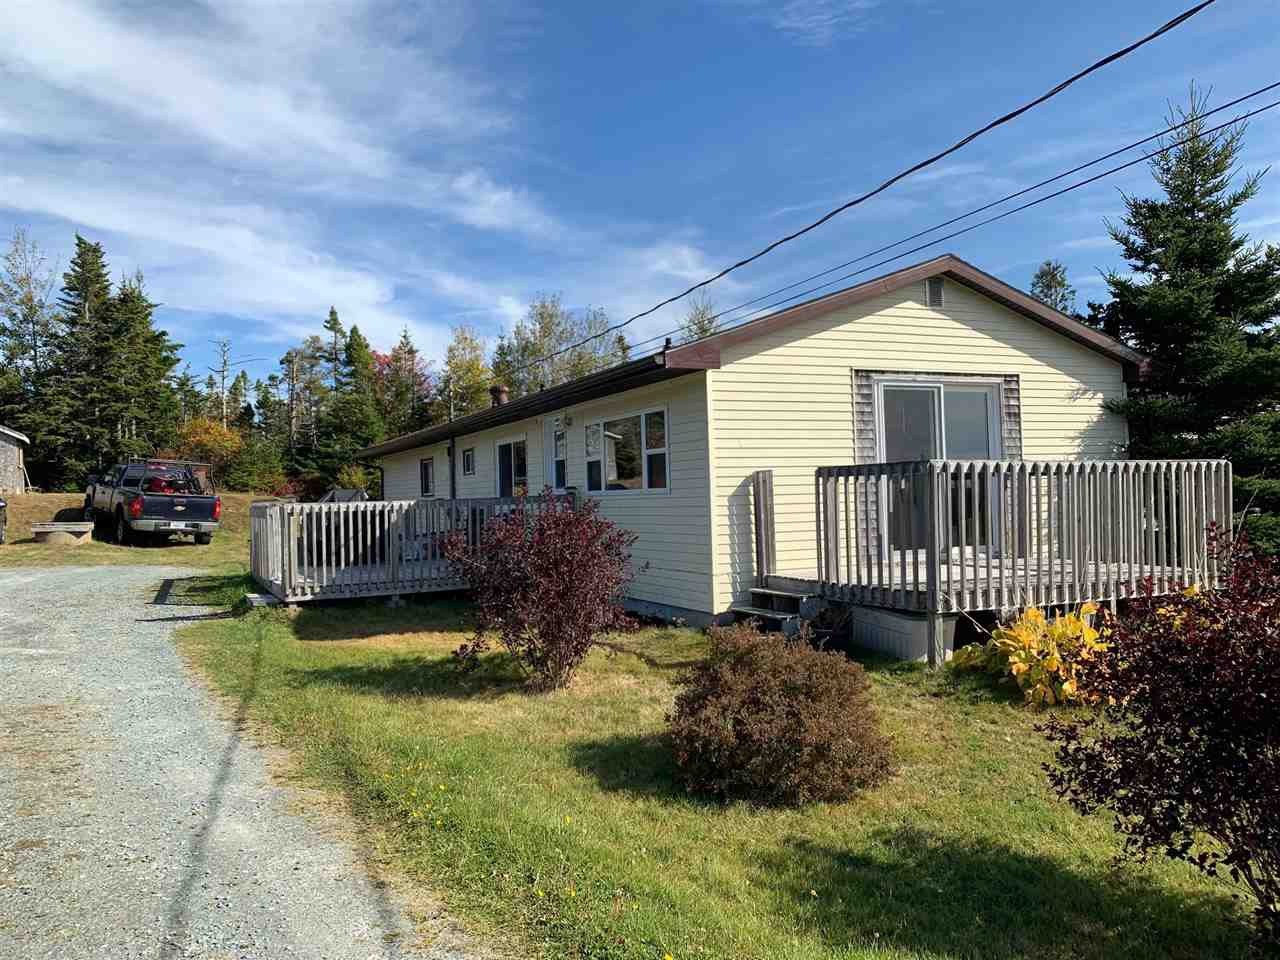 Main Photo: 1579 Ostrea Lake Road in Ostrea Lake: 35-Halifax County East Residential for sale (Halifax-Dartmouth)  : MLS®# 201924551